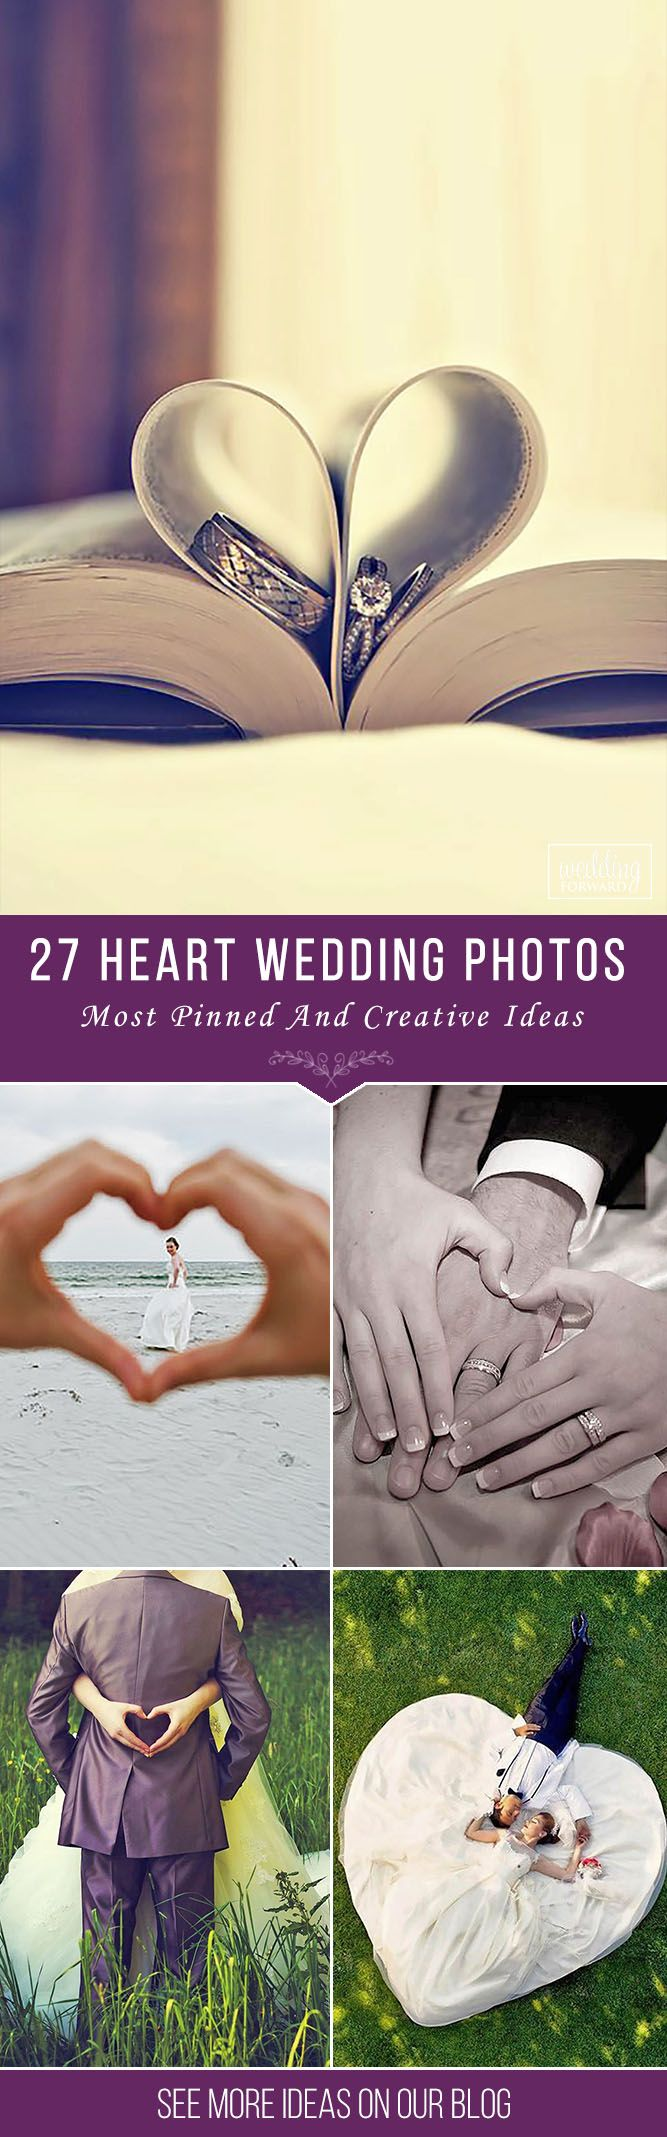 27 Most Pinned Heart Wedding Photos ❤ We propose you to take a look on heart wedding photos. Everybody knows that heart is a symbol of love. But how to nicely include it to photo composition? See more http://www.weddingforward.com/heart-wedding-photos/ #wedding #photography